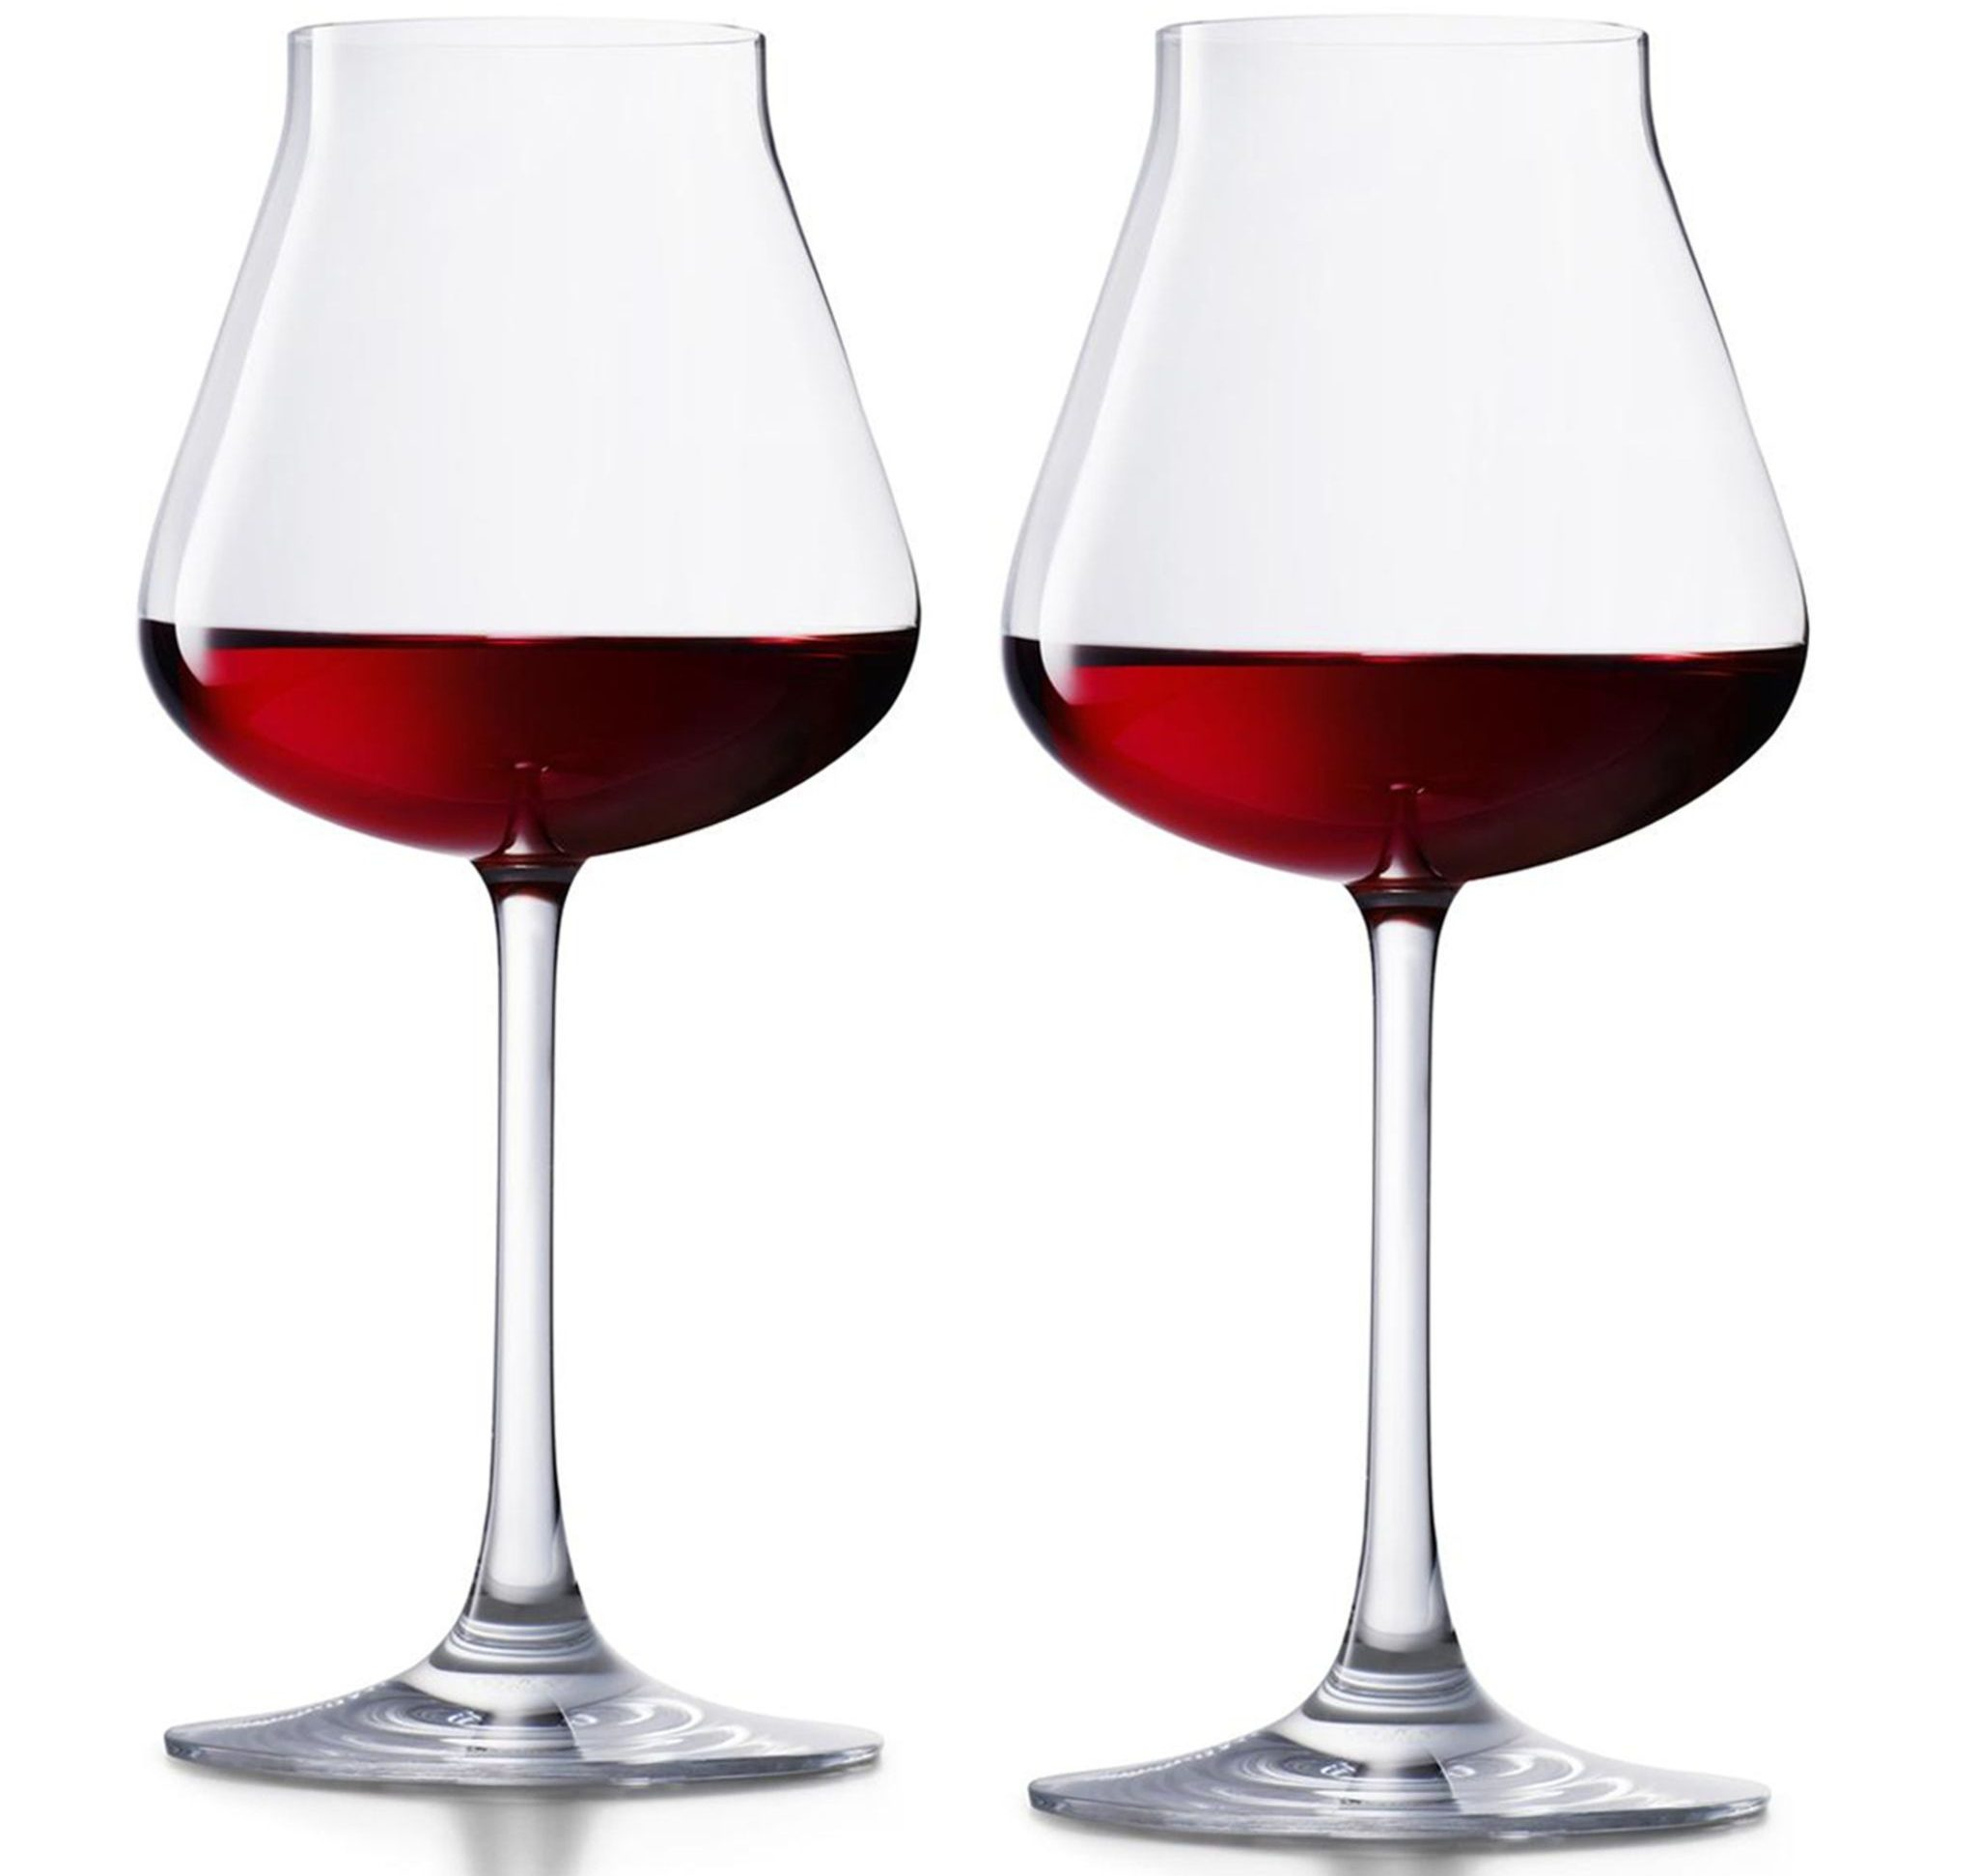 Château Baccarat Red Wine Glasses (Set of 2), Harrods